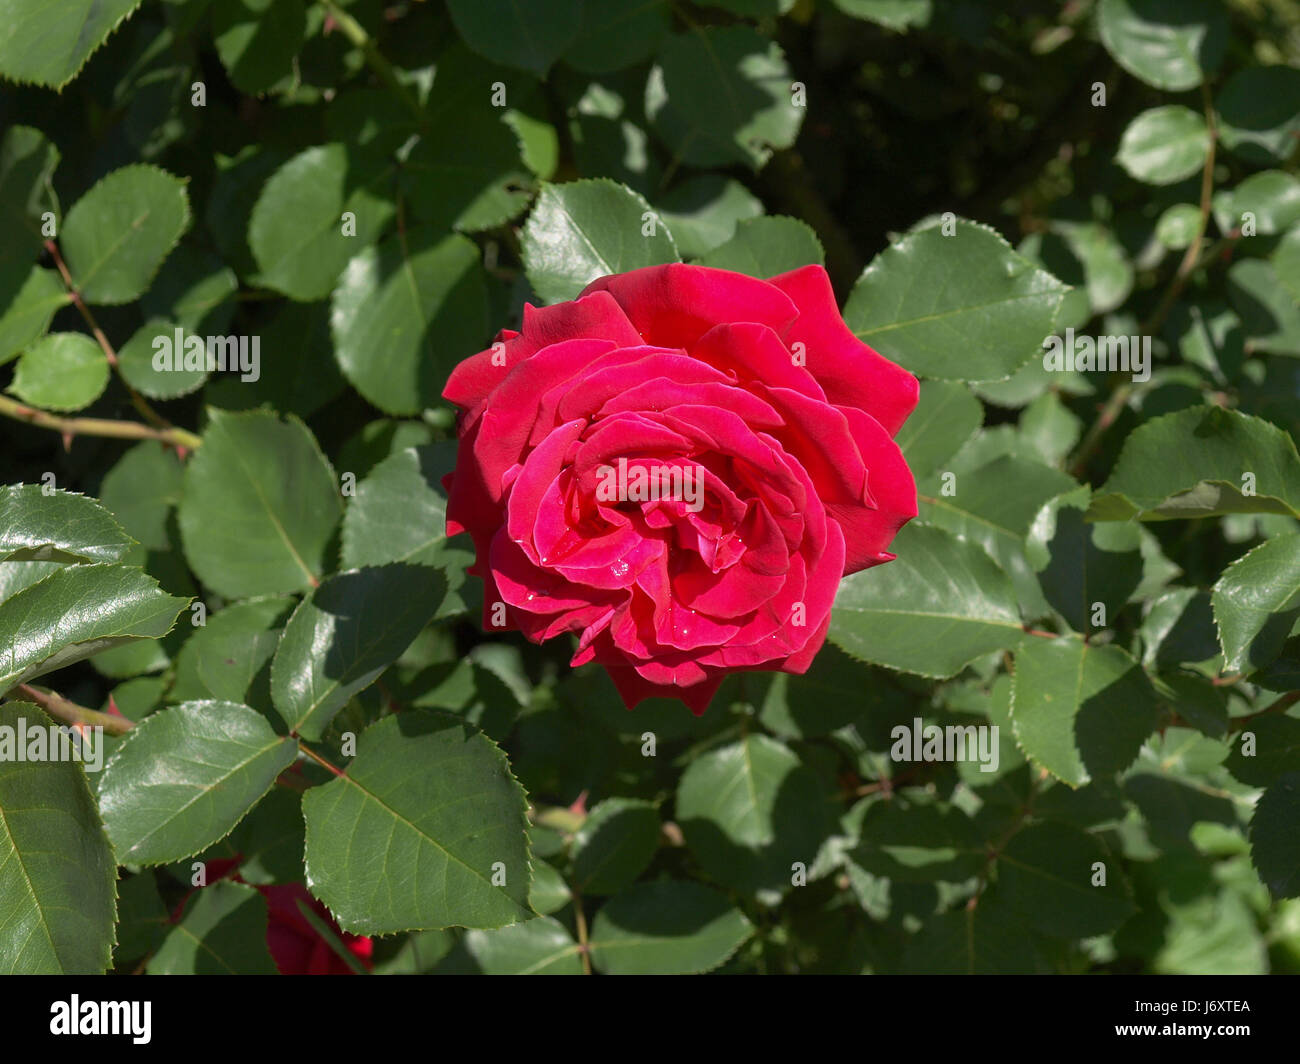 Flower Plant Rose Red Leaf Tree Flower Plant Rose Leaves Purple Bush Stock Photo Alamy